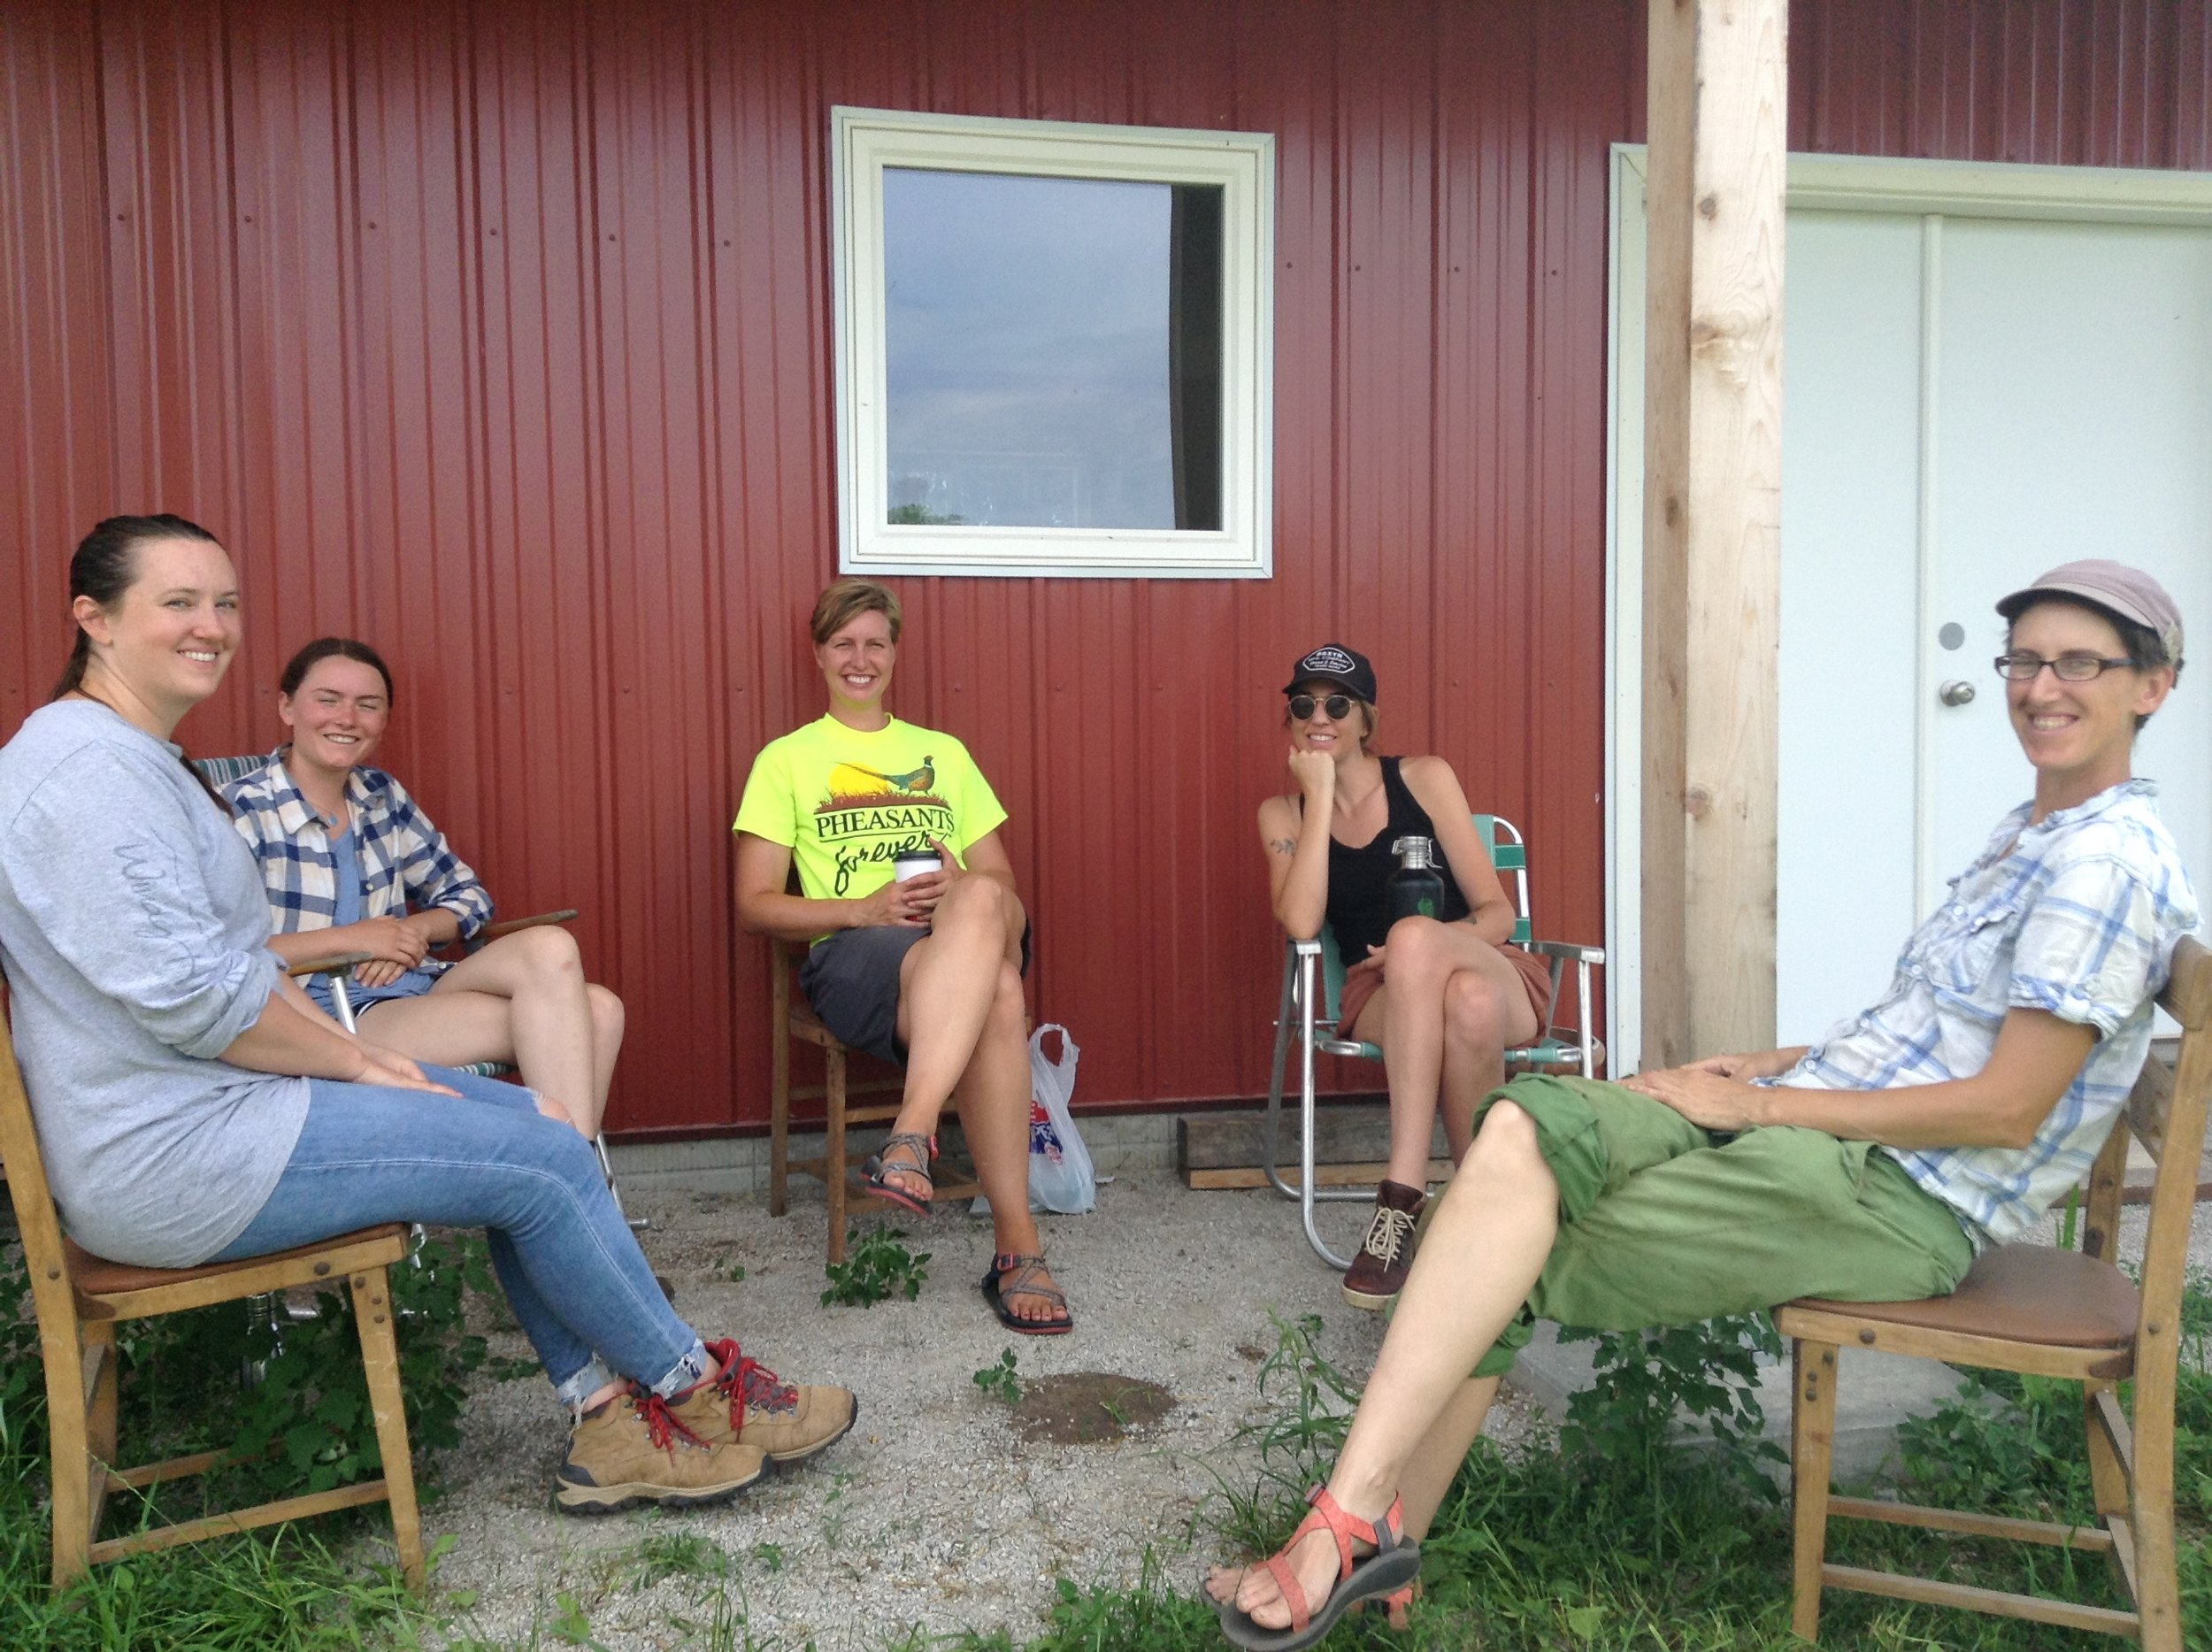 2019 HOP mentees Nicole, Caitlin, Brigham, and Emily, along with HOP mentor Alice at the HOP retreat on Mustard Seed Farm.